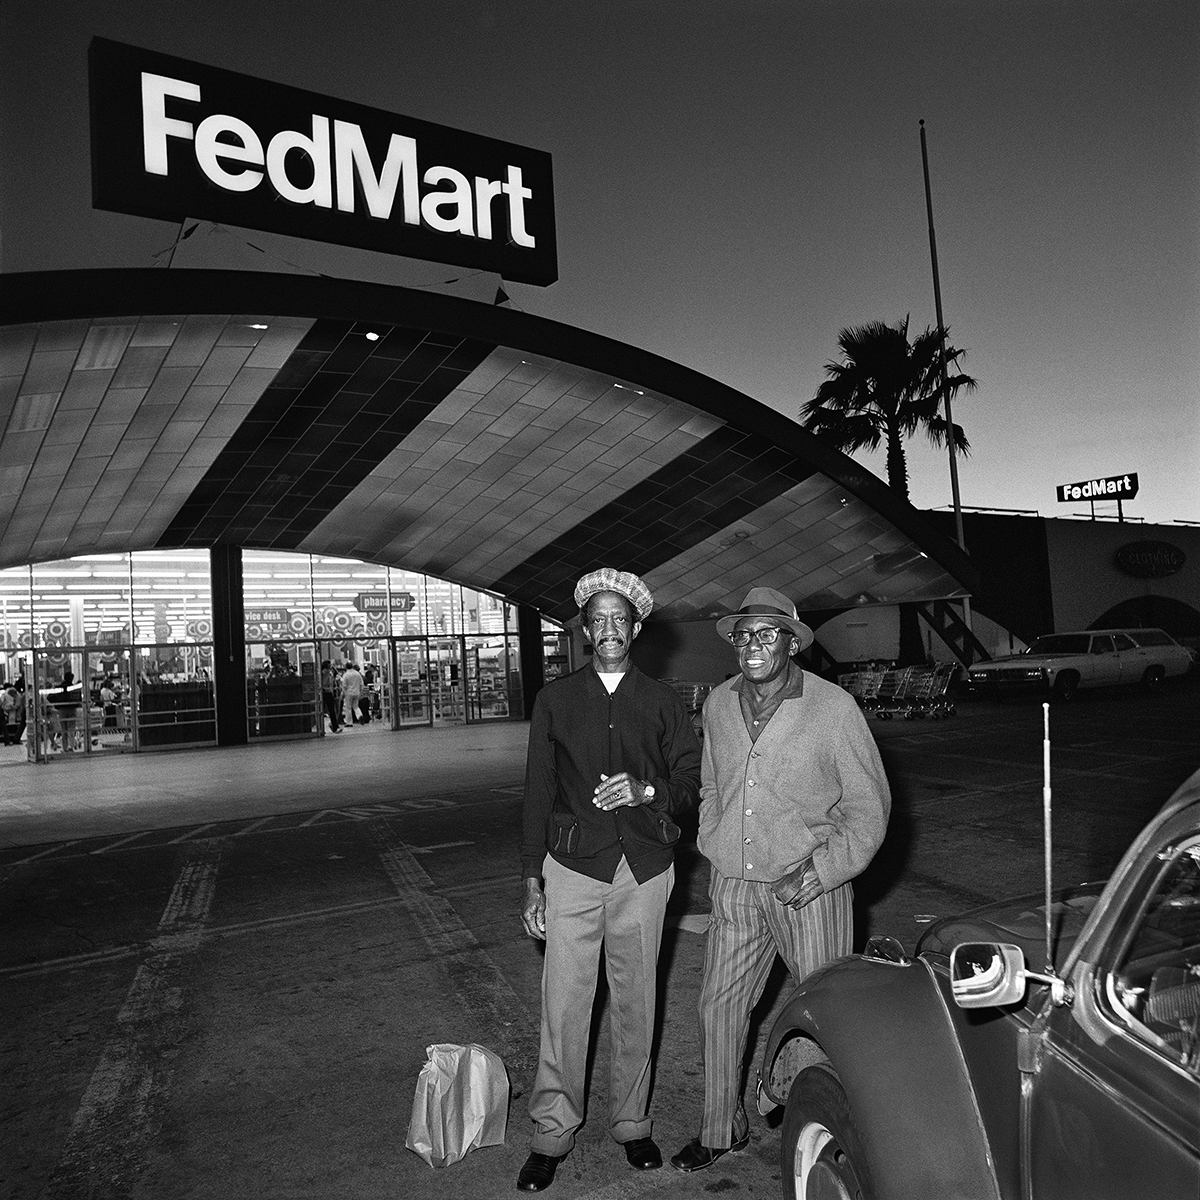 Two Men at FedMart, 1976